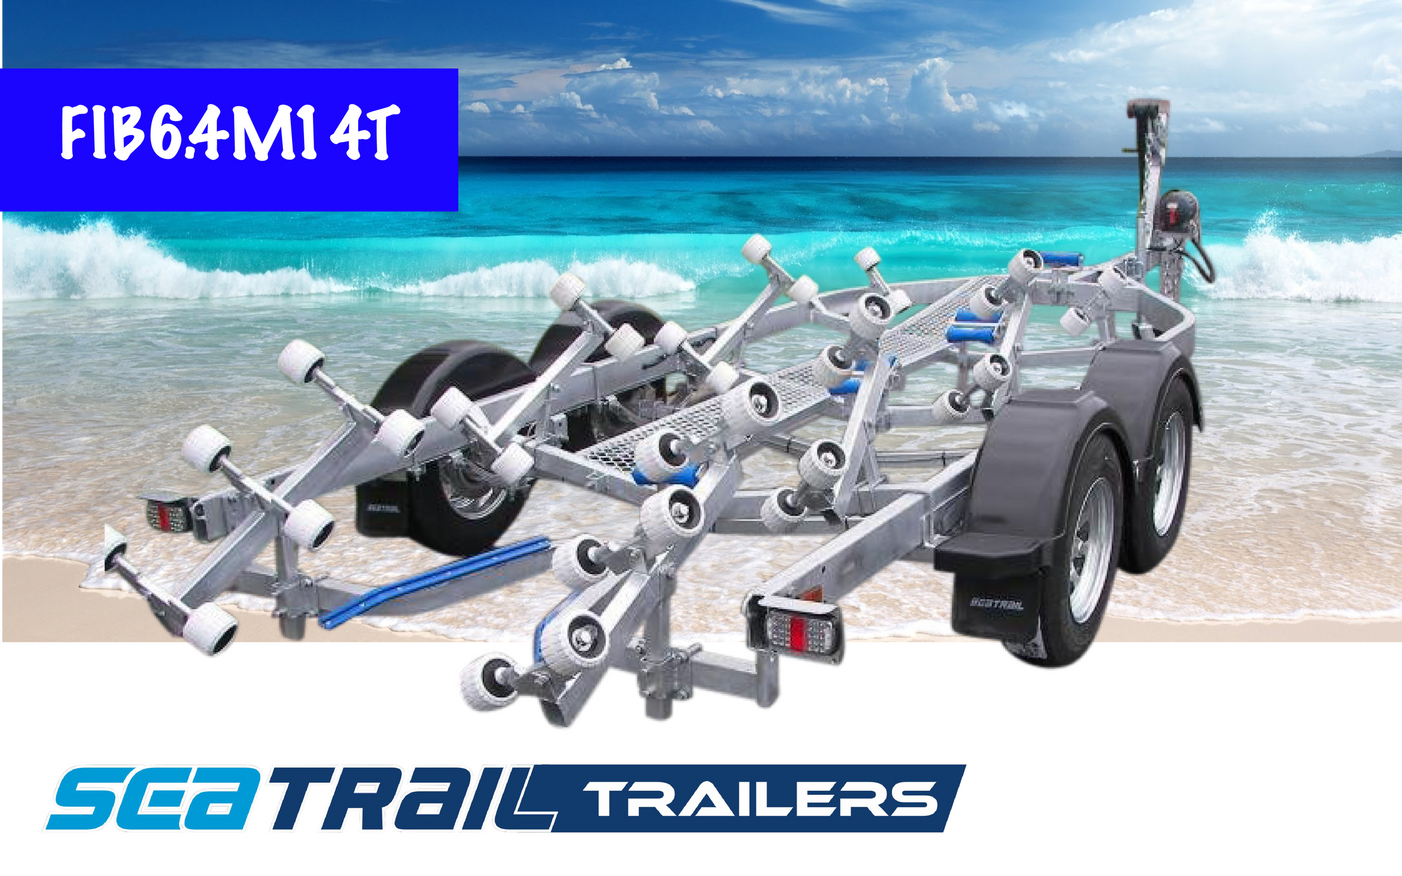 SEATRAIL FIB6.4M14T 3000KG RATED ROLLERED BOAT TRAILER